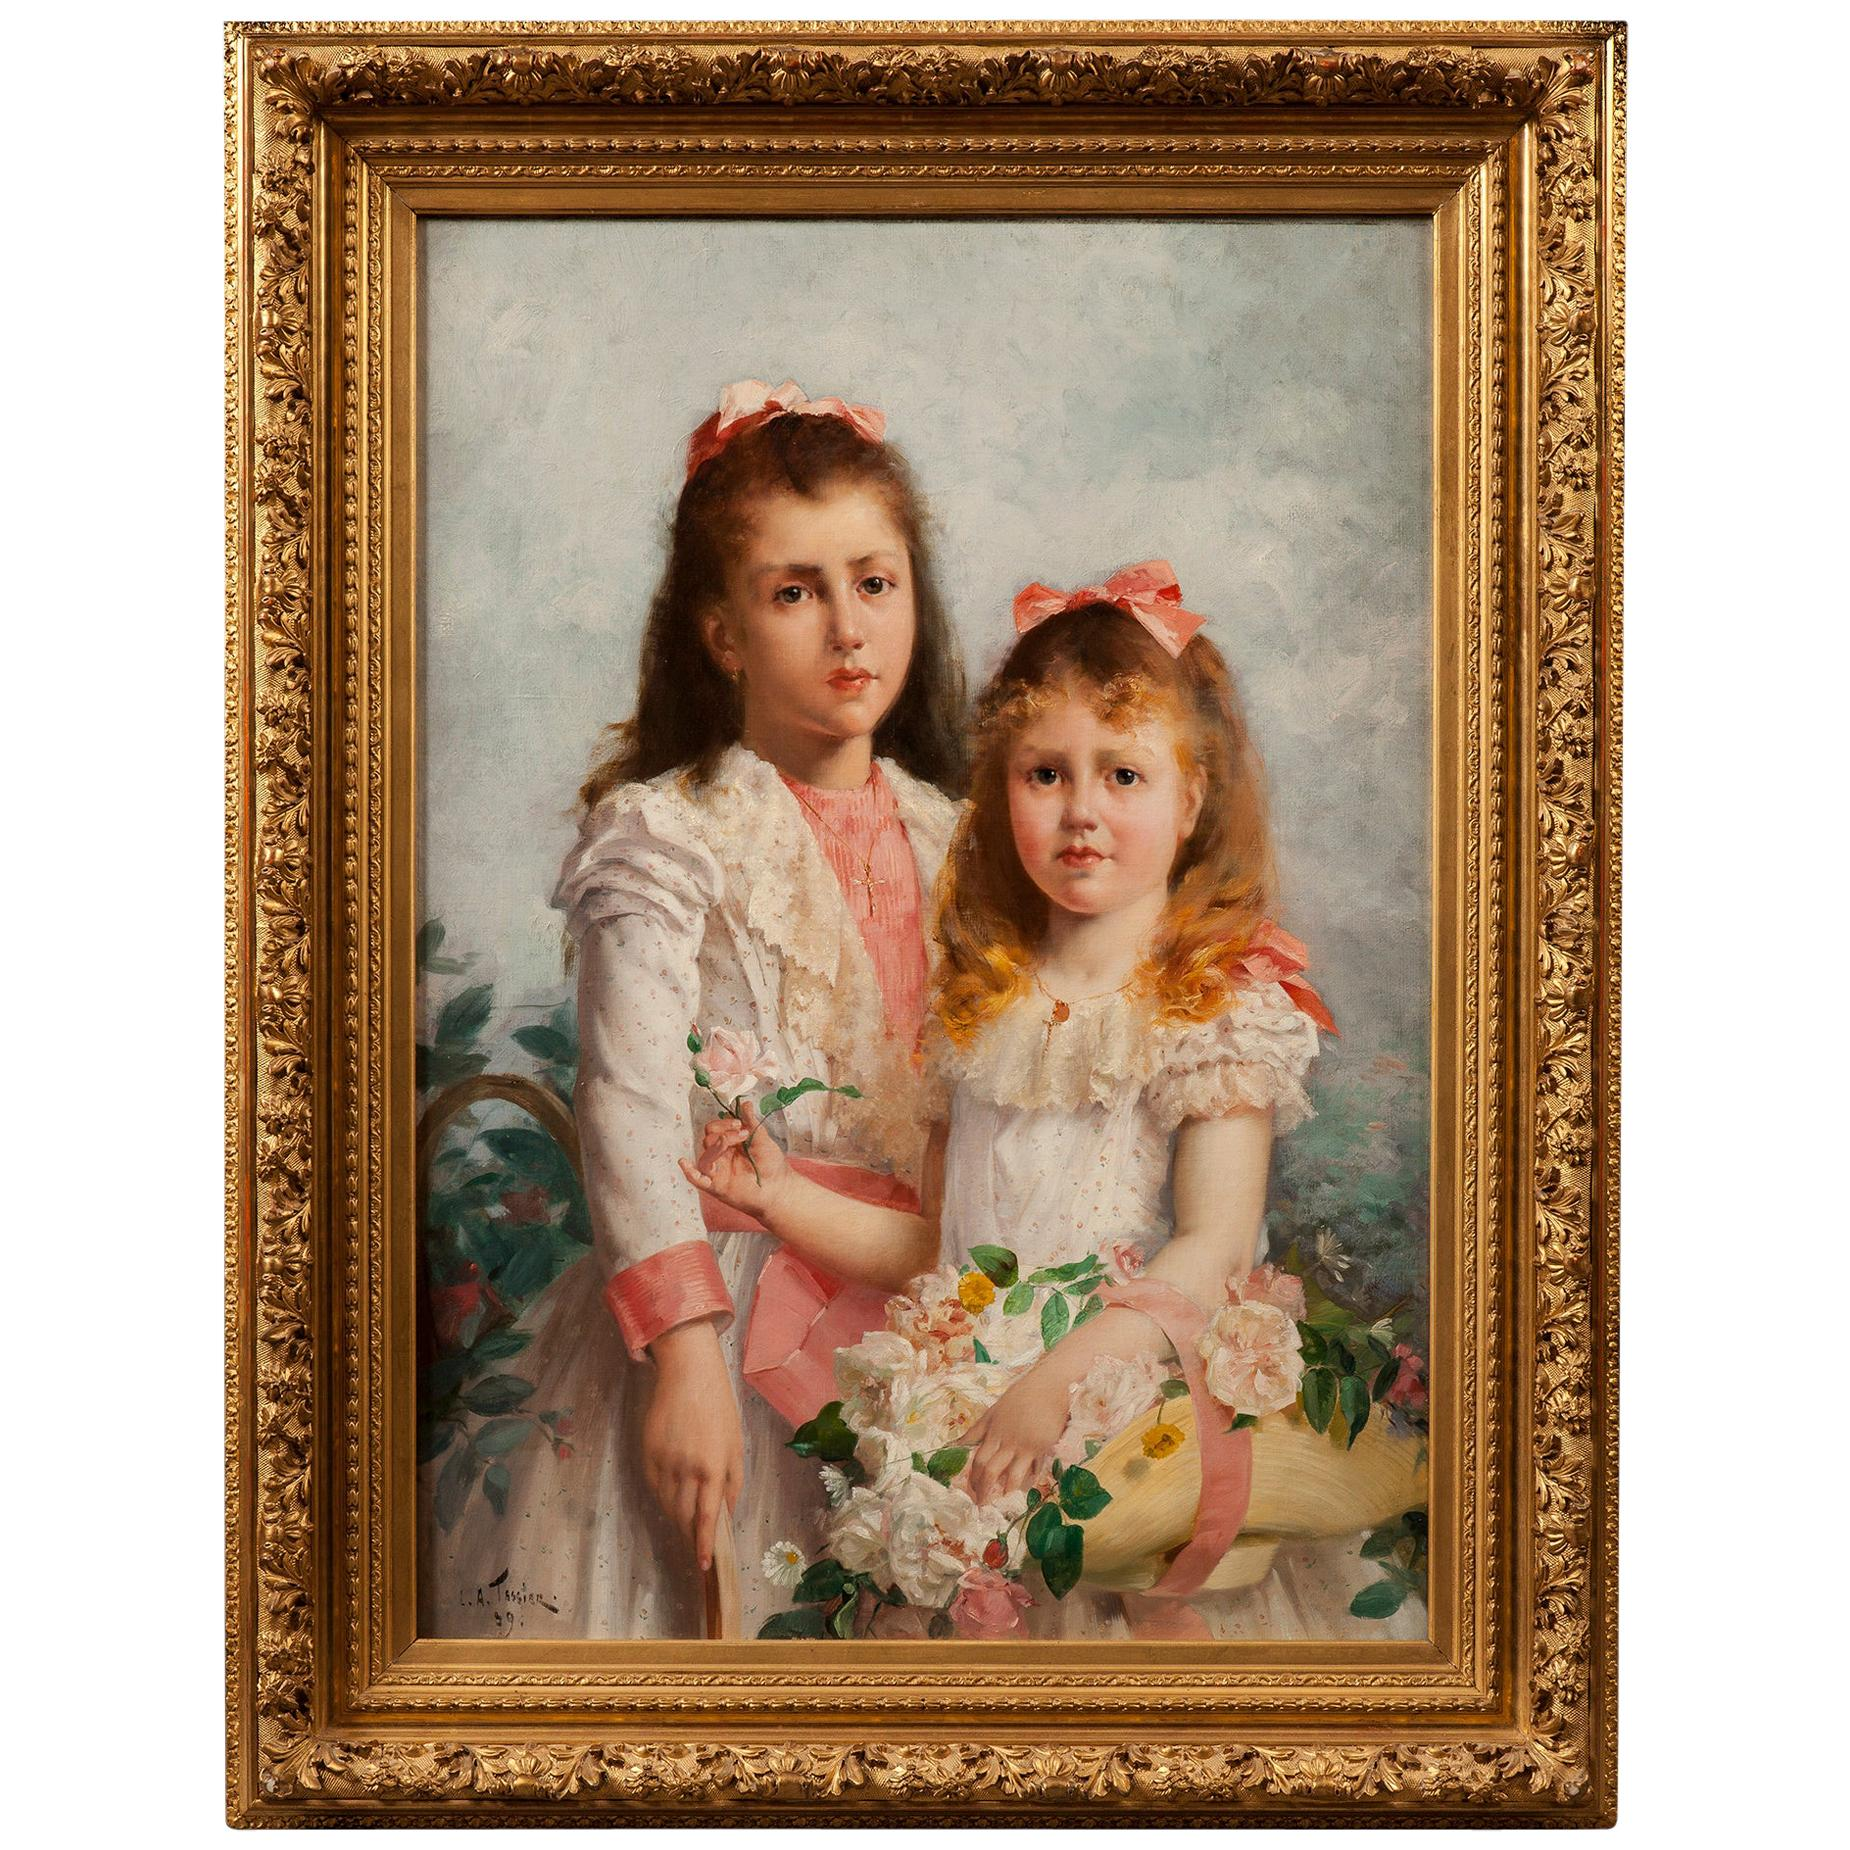 'The Sisters' by Louis Adolphe Tessier, a Signed Belle Époque Painting